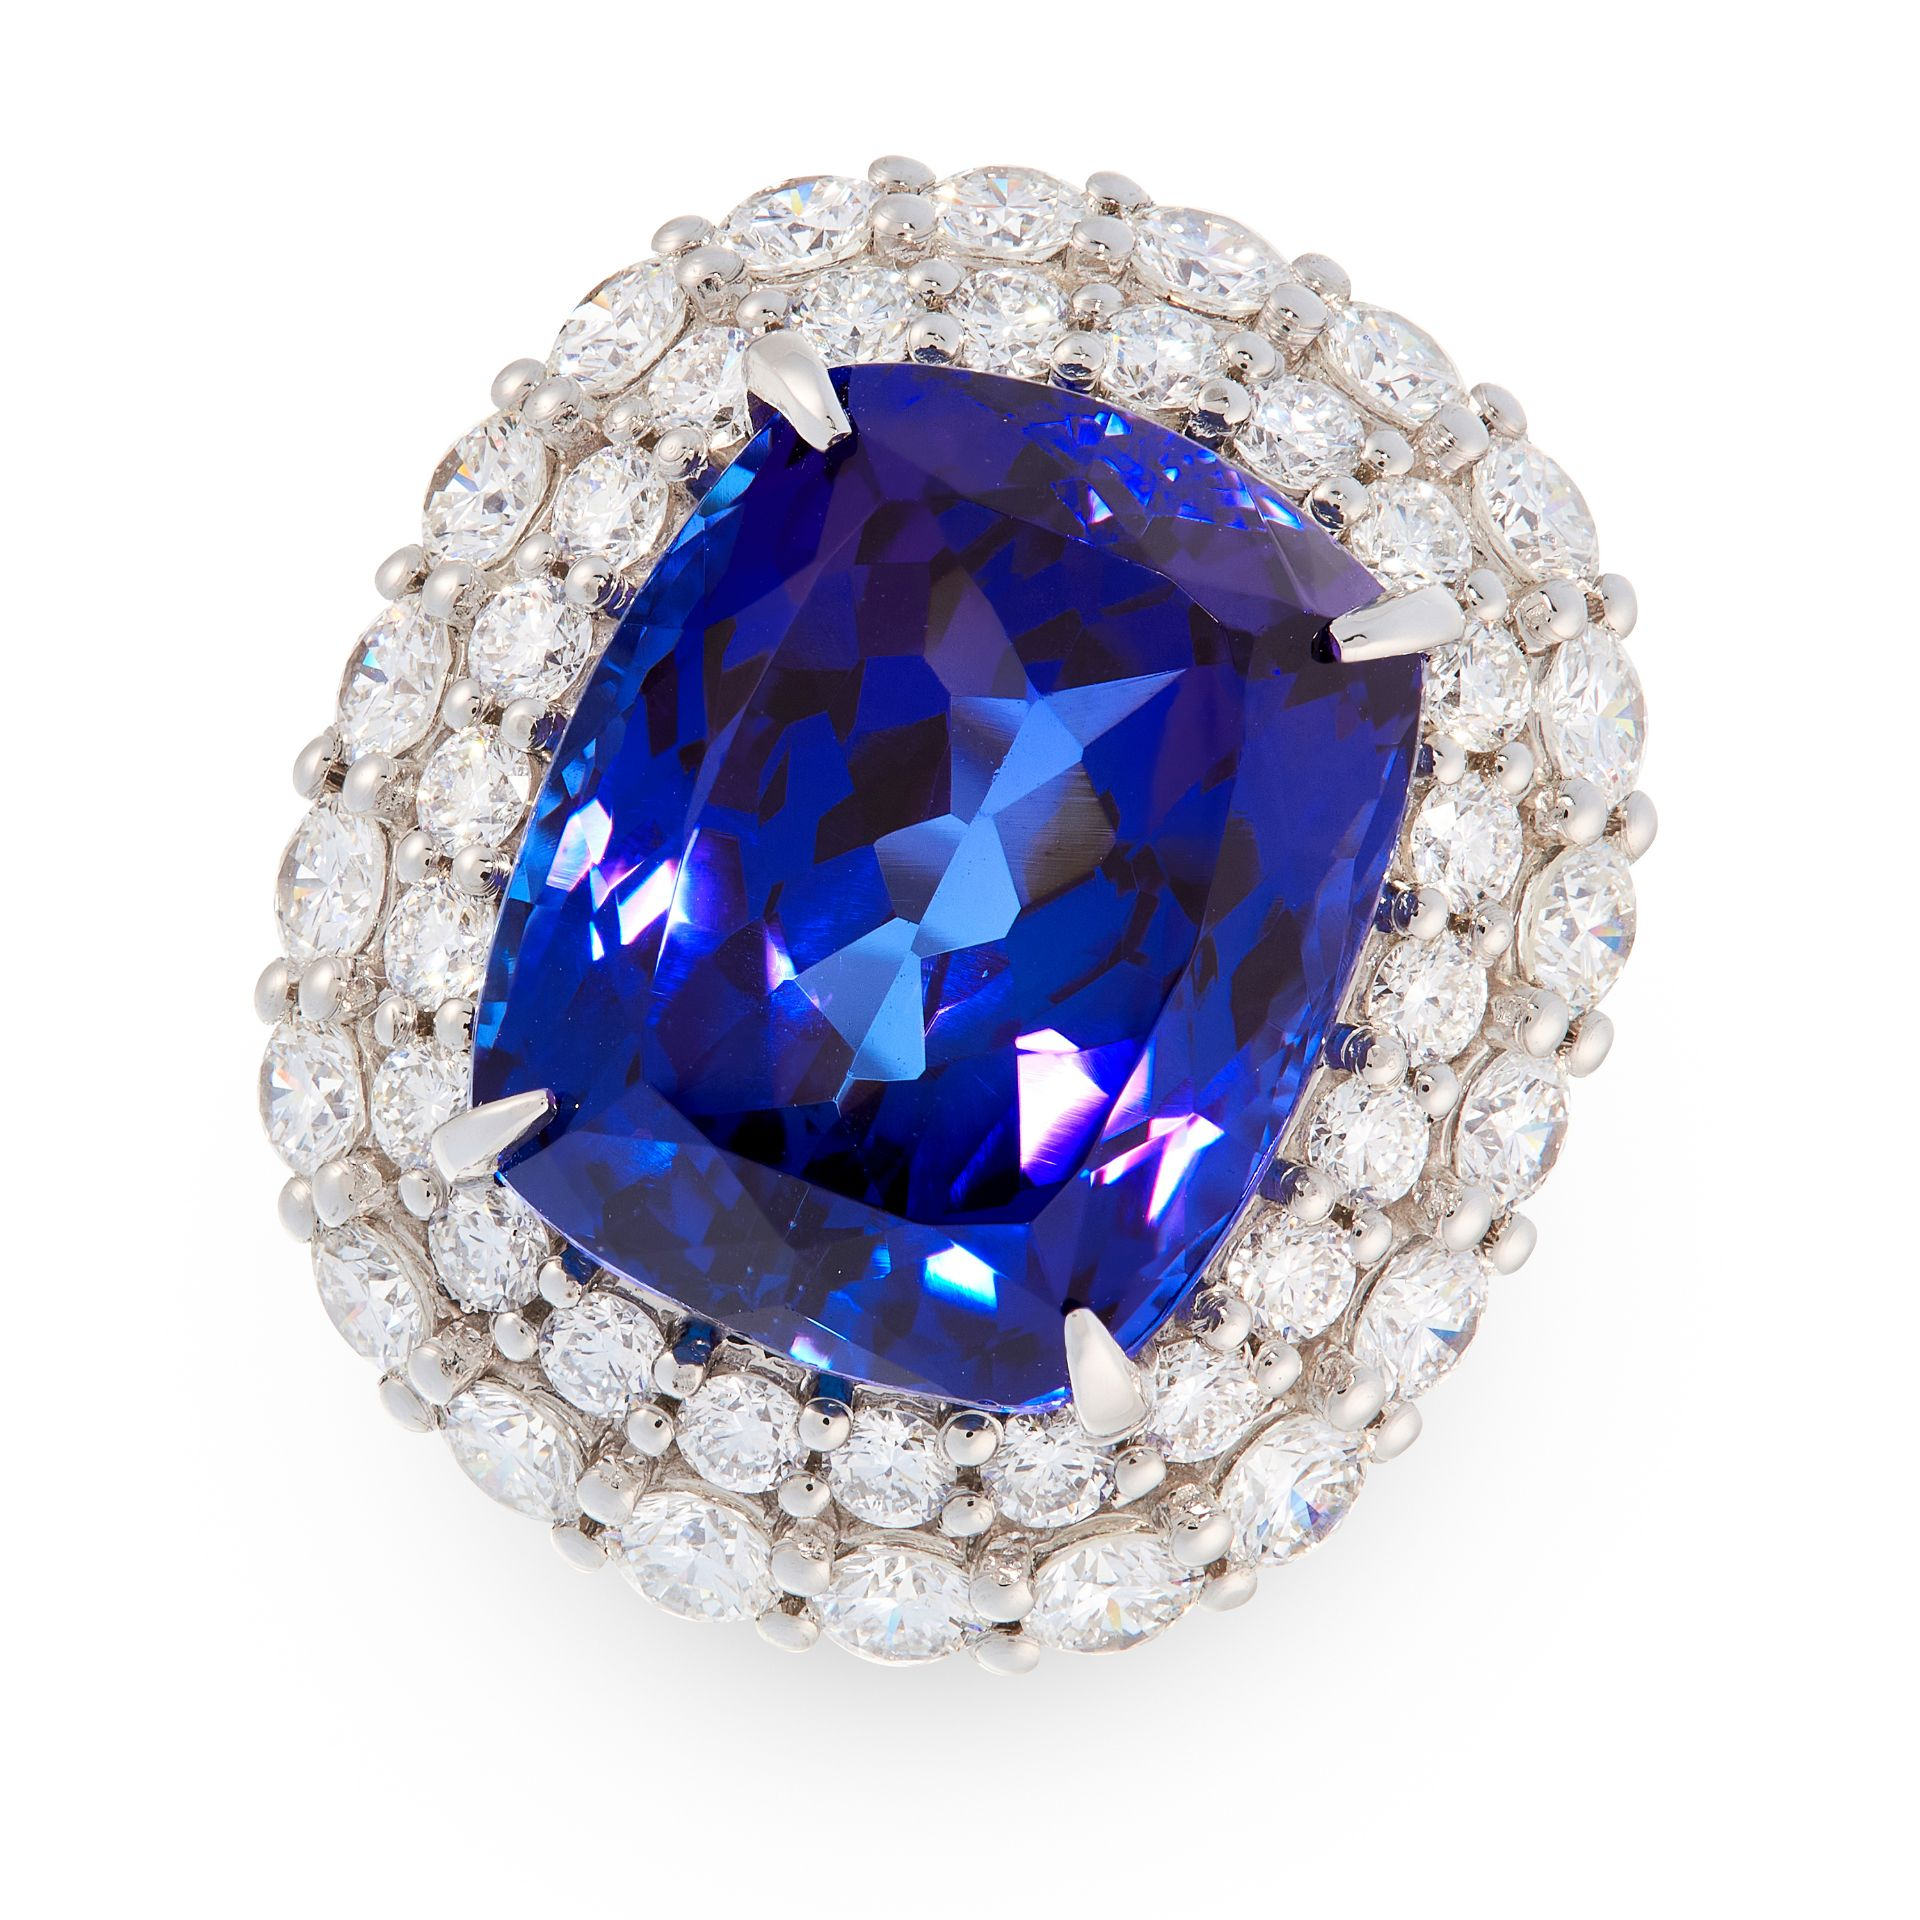 AN EXCEPTIONAL TANZANITE AND DIAMOND DRESS RING in platinum, set with a cushion cut tanzanite of